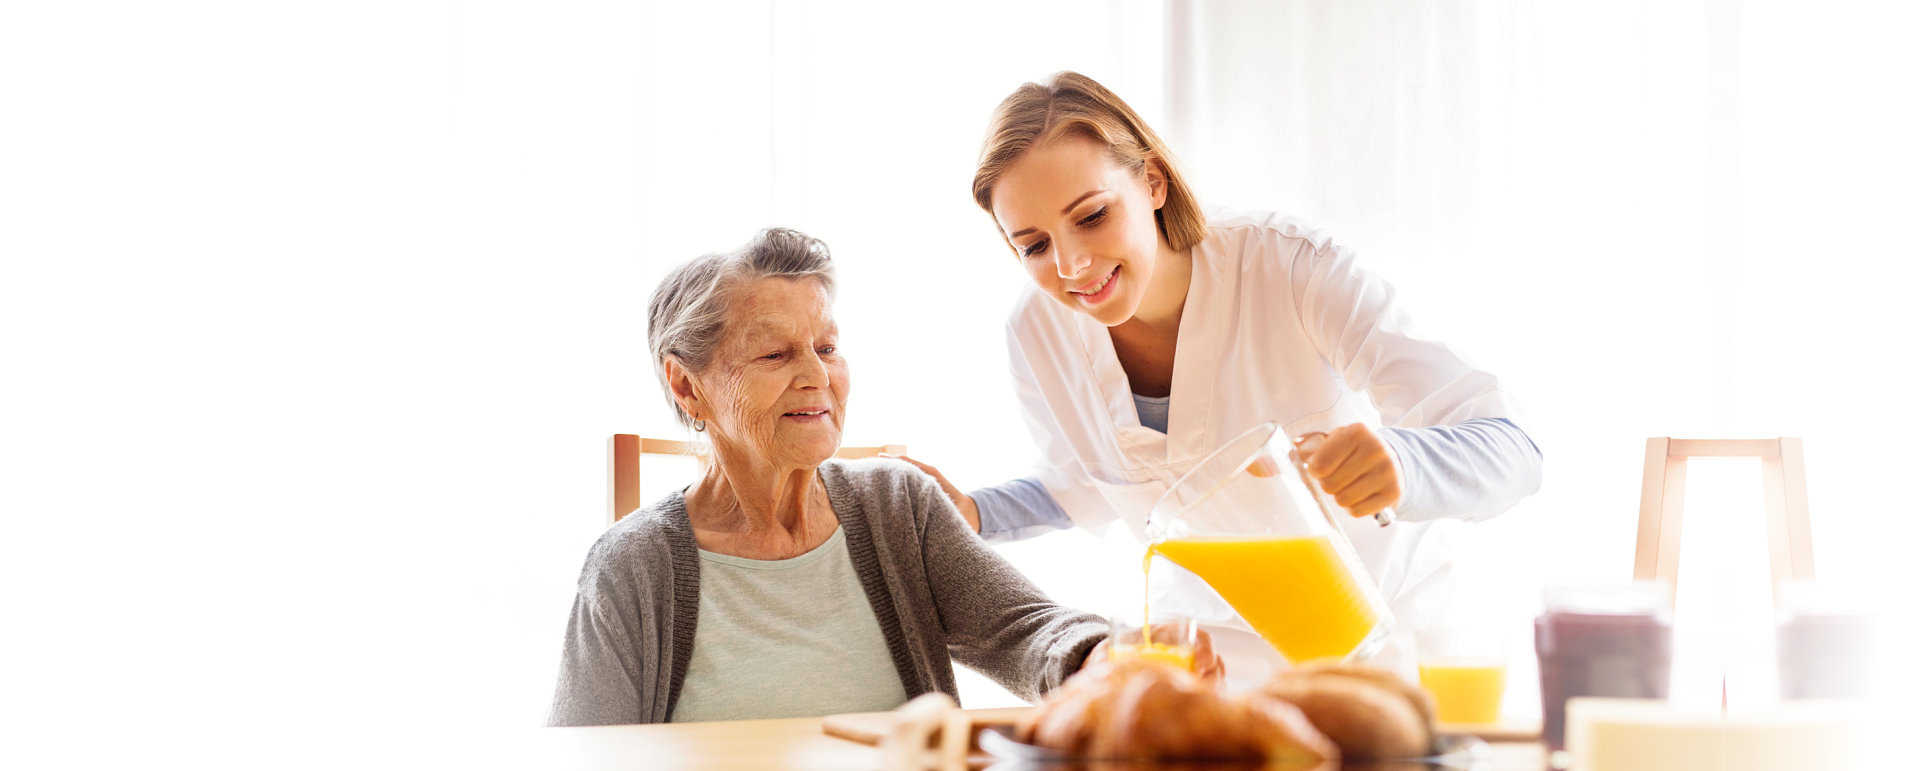 caregiver giving a drink to a senior woman